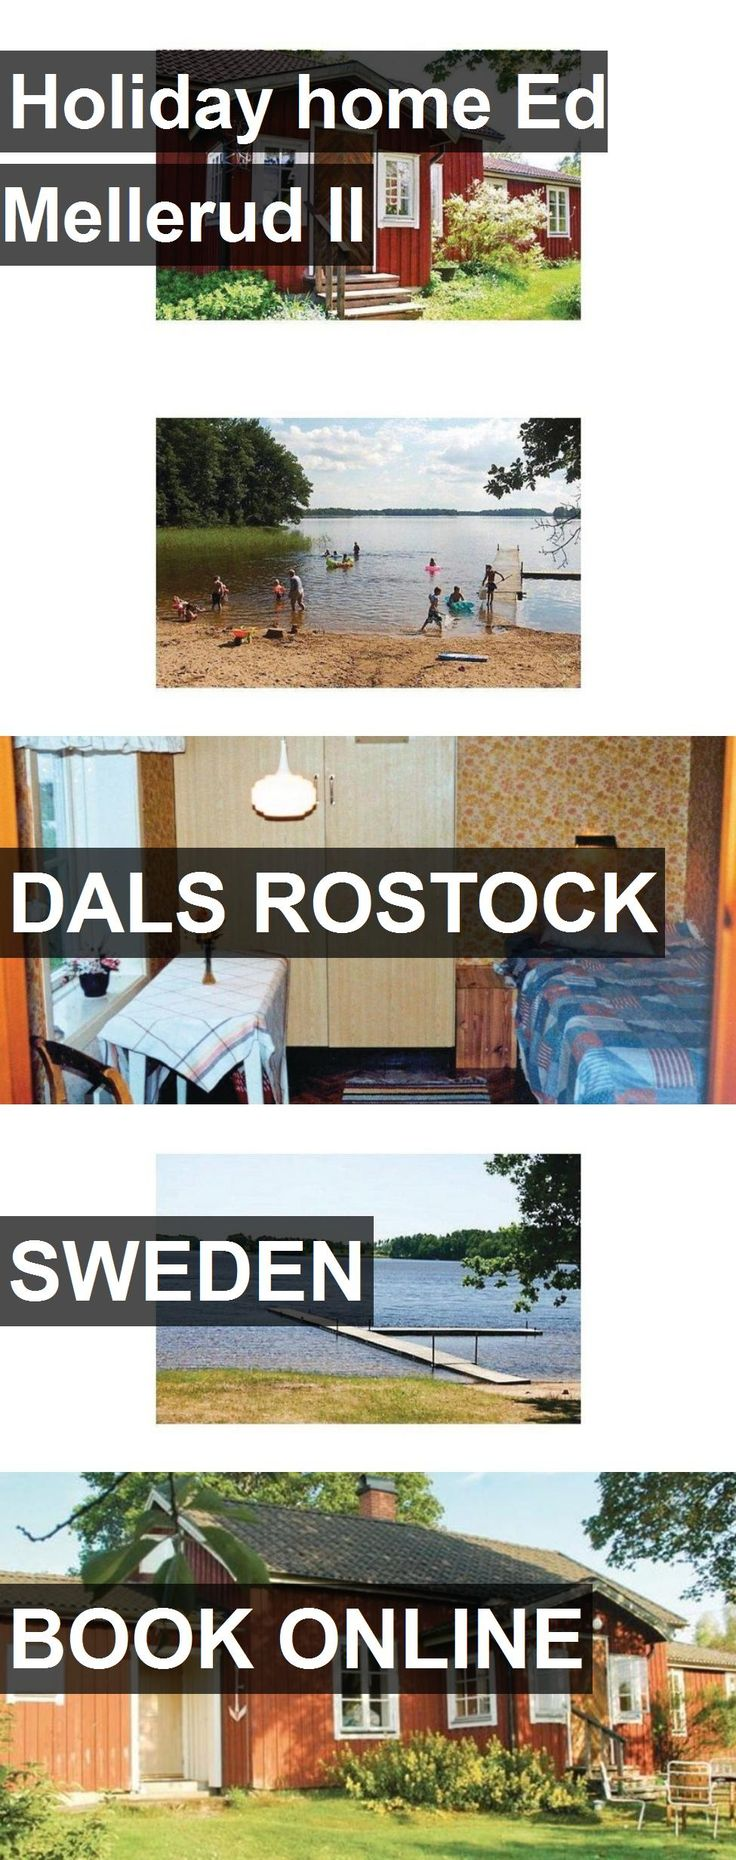 Hotel Holiday home Ed Mellerud II in Dals Rostock, Sweden. For more information, photos, reviews and best prices please follow the link. #Sweden #DalsRostock #HolidayhomeEdMellerudII #hotel #travel #vacation